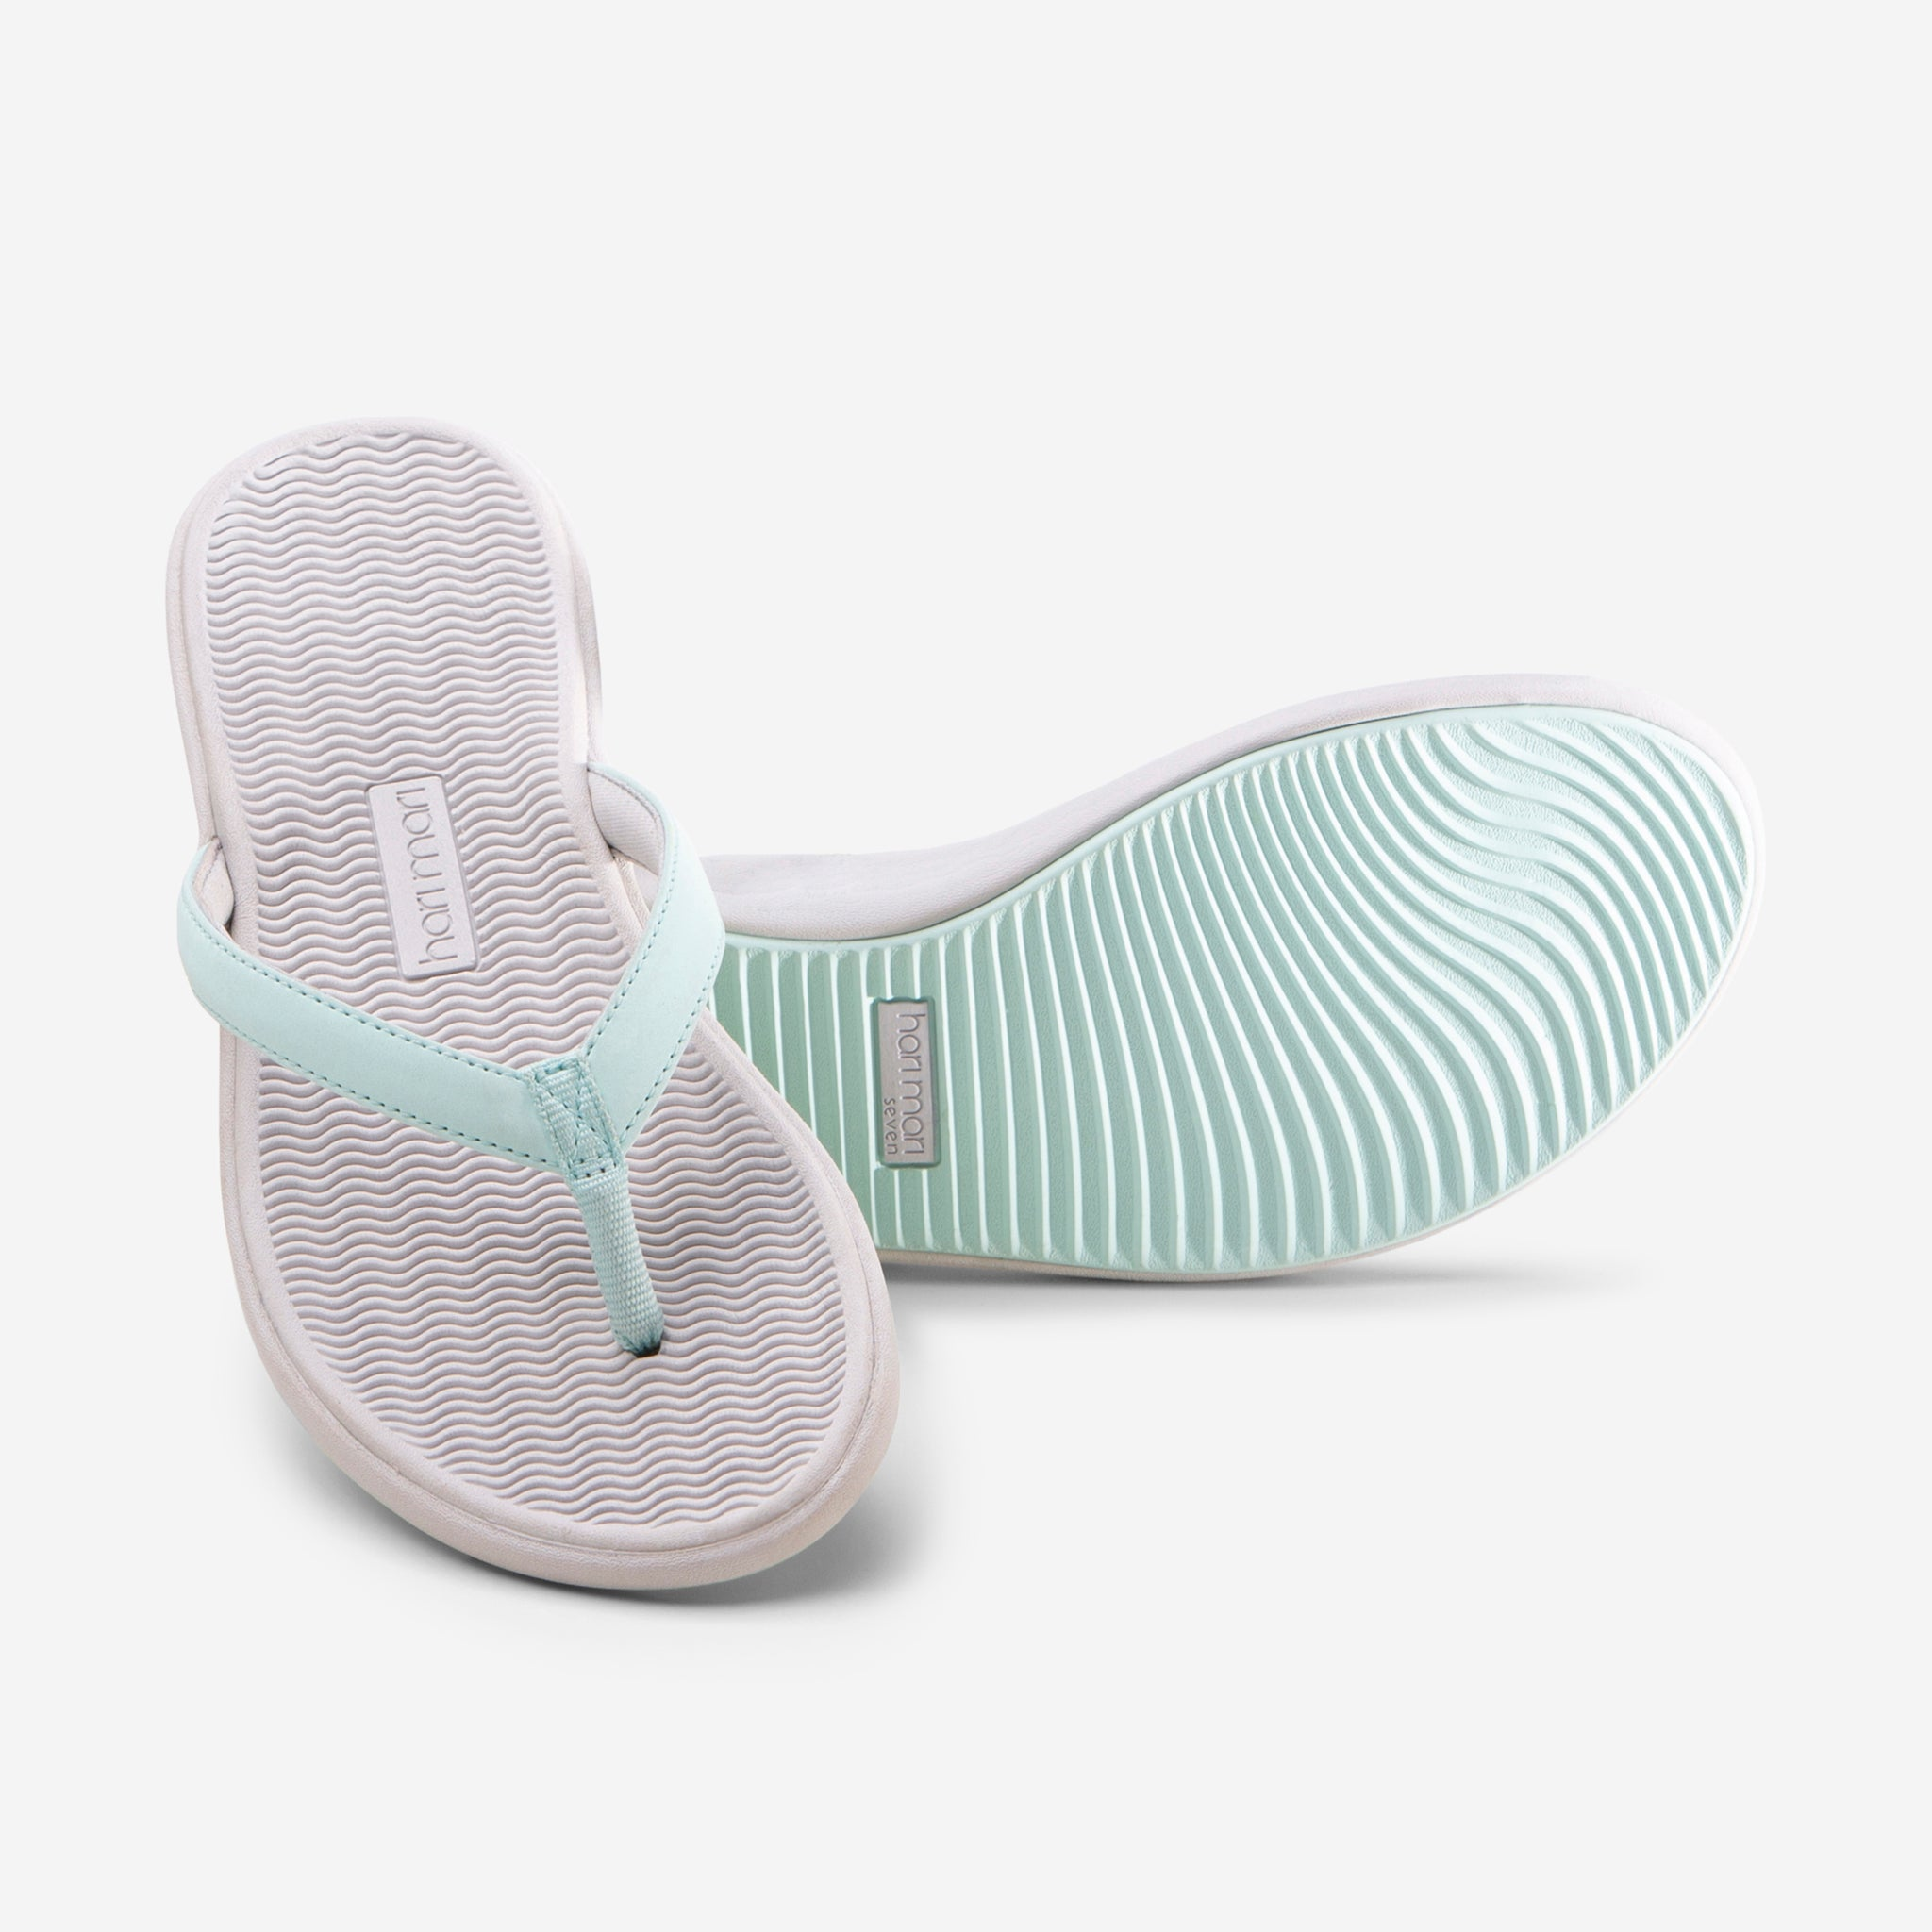 Beachsides - Women's - Aqua/Light Gray - 45 Degree/Bottom View